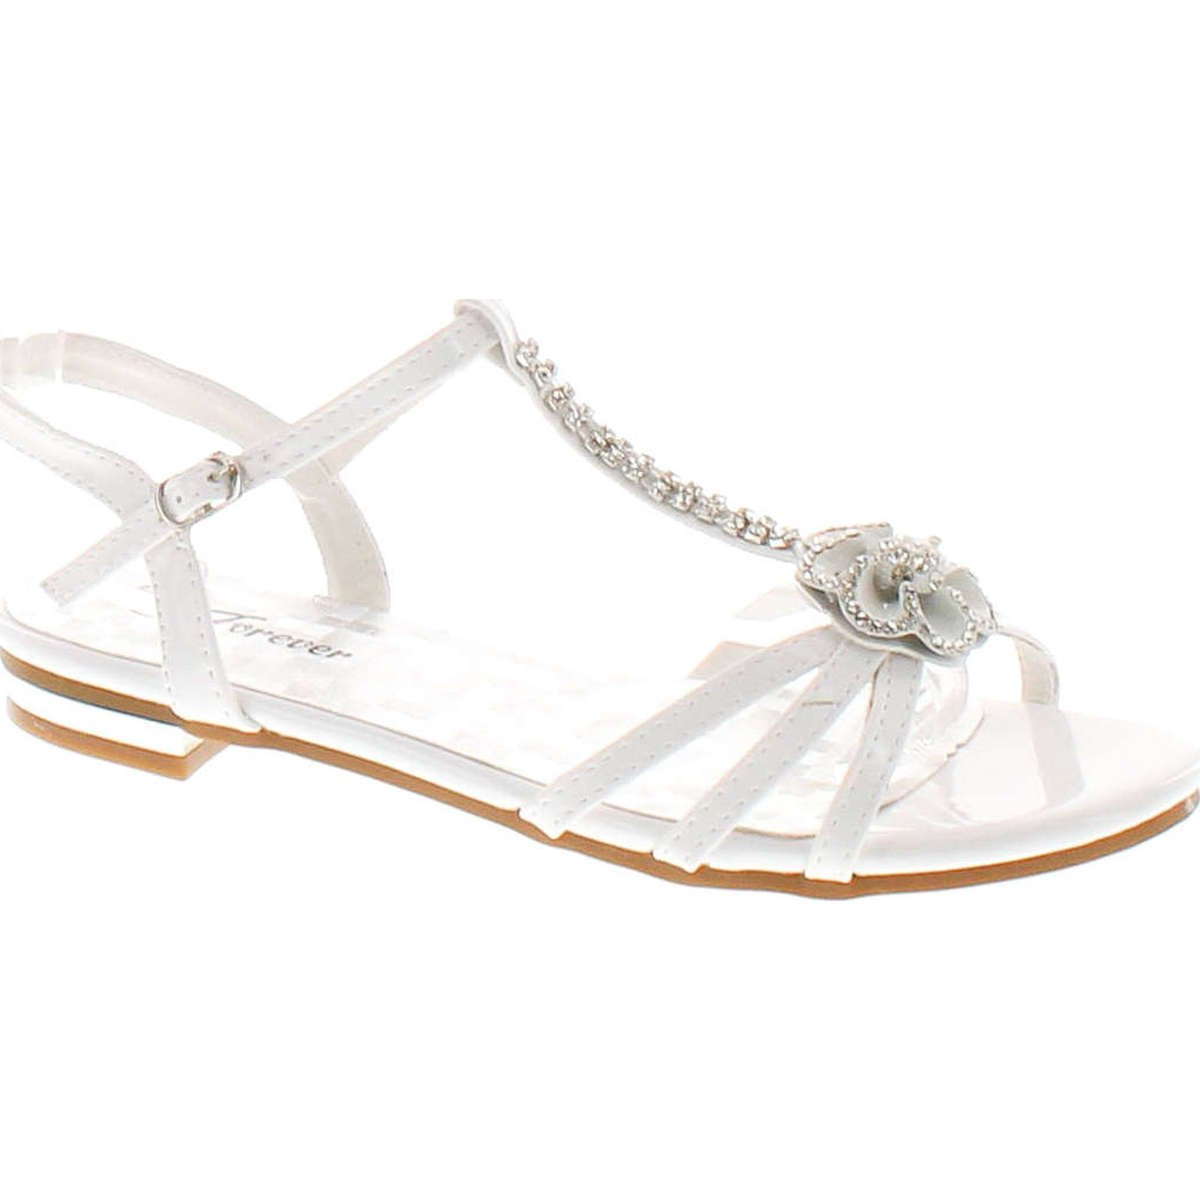 Forever Nora-69 Womens Open Toe Flat Wedding Party Dress Sandal Shoes,White,10